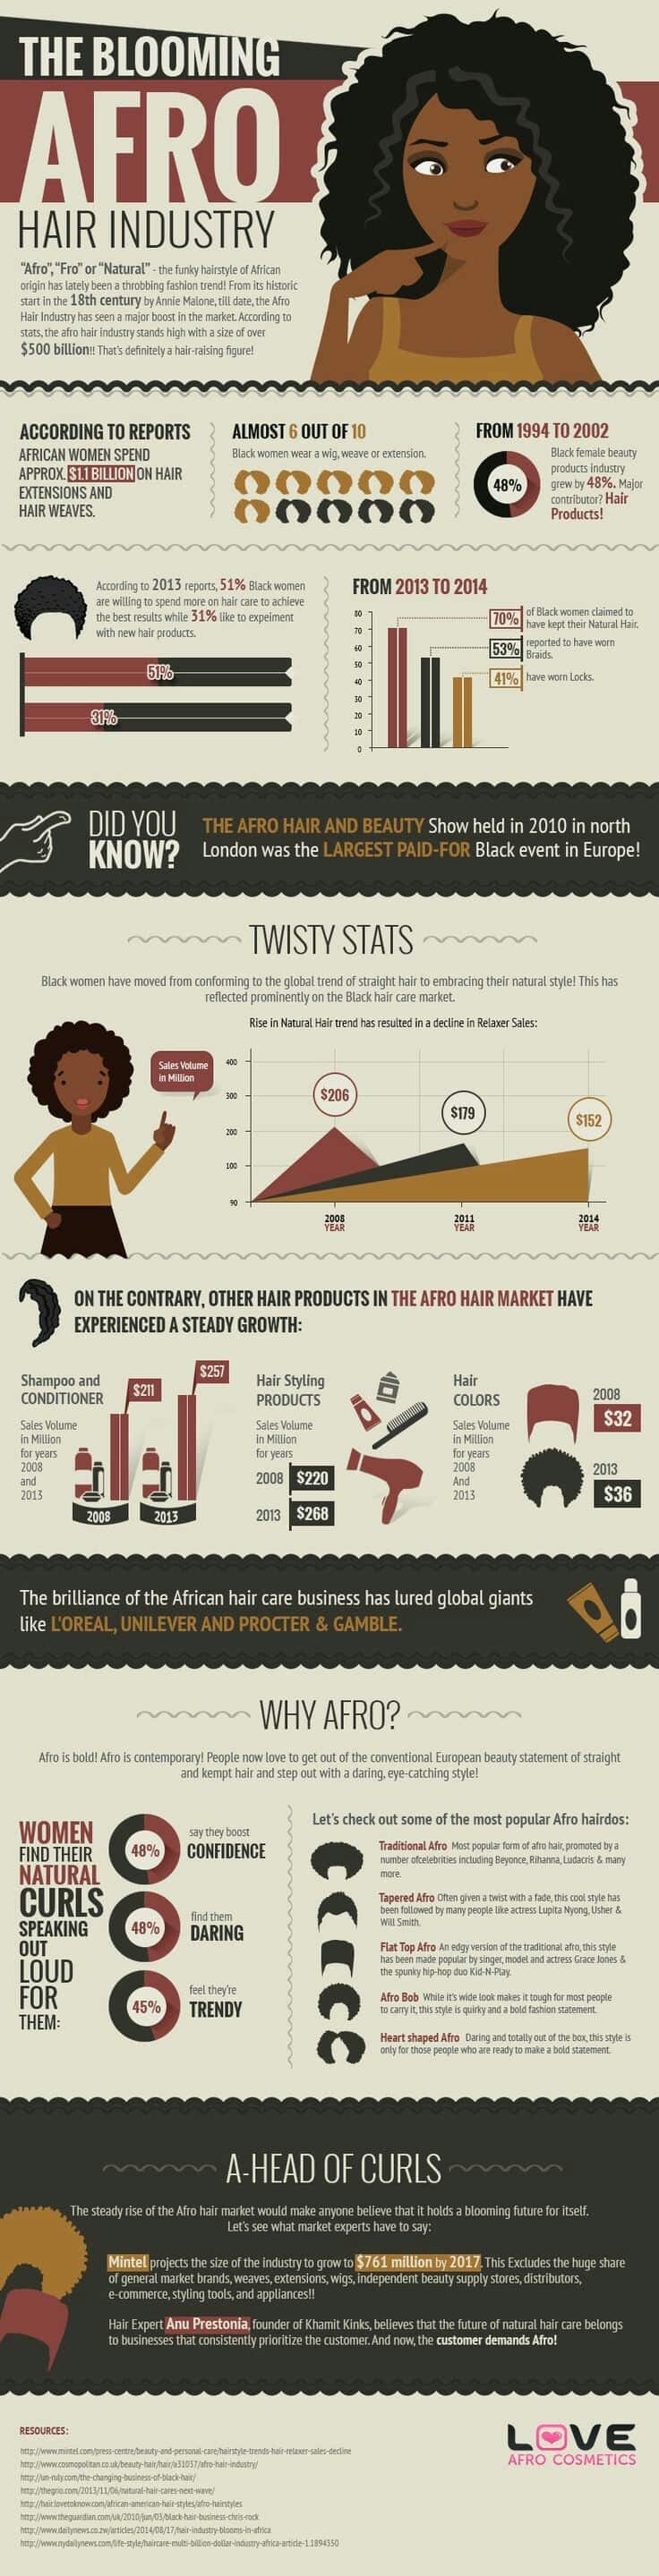 Afro hair is booming business